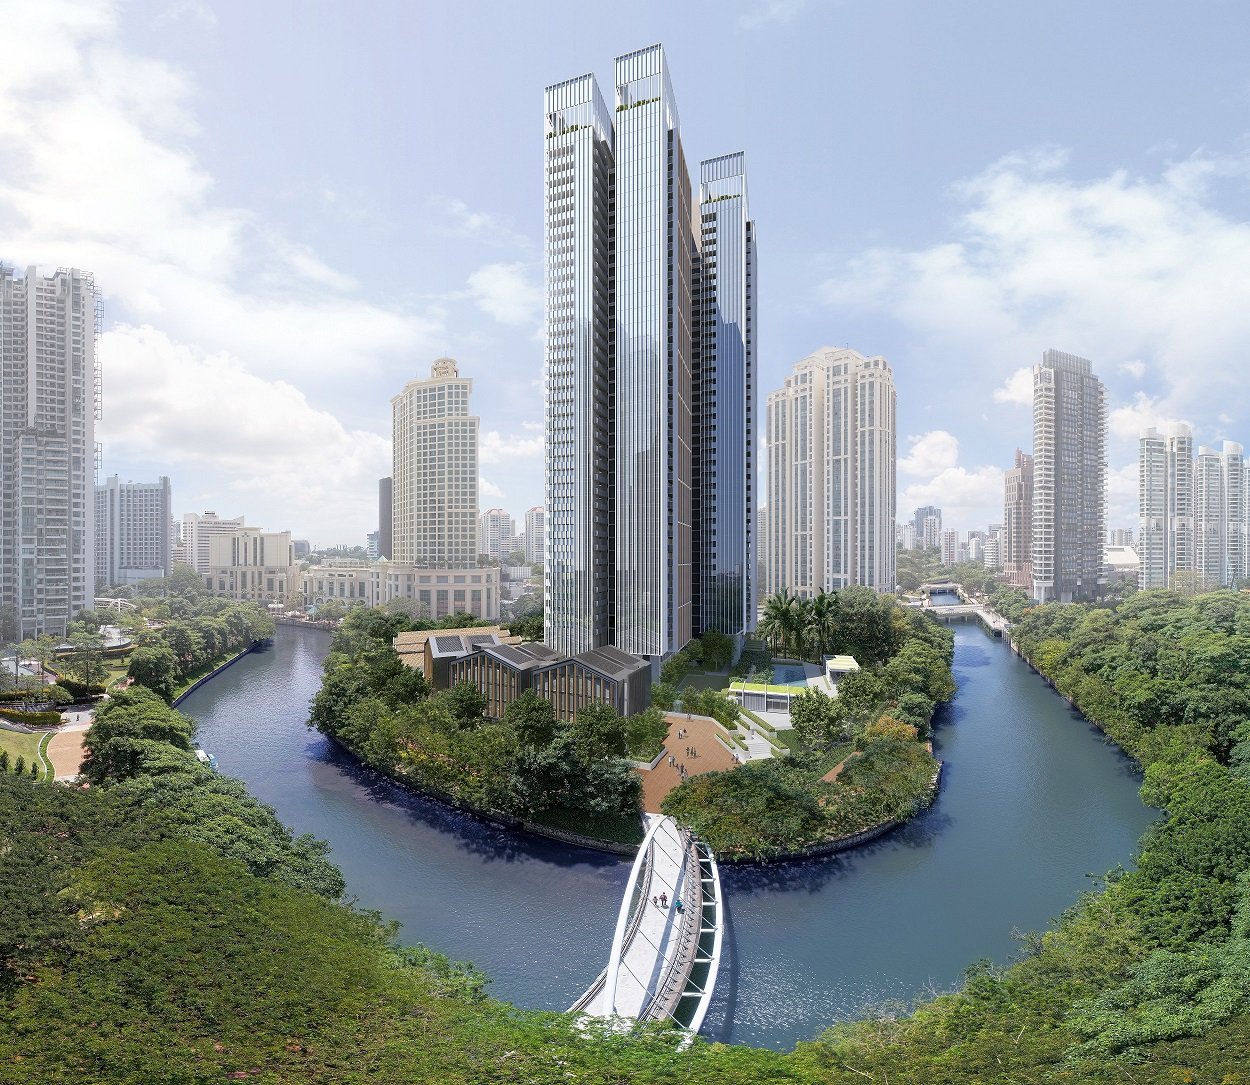 RIVIERE - Artist's impression of the upcoming 455-unit luxury residences at Riviere on the Jiak Kim Street site - EDGEPROP SINGAPORE